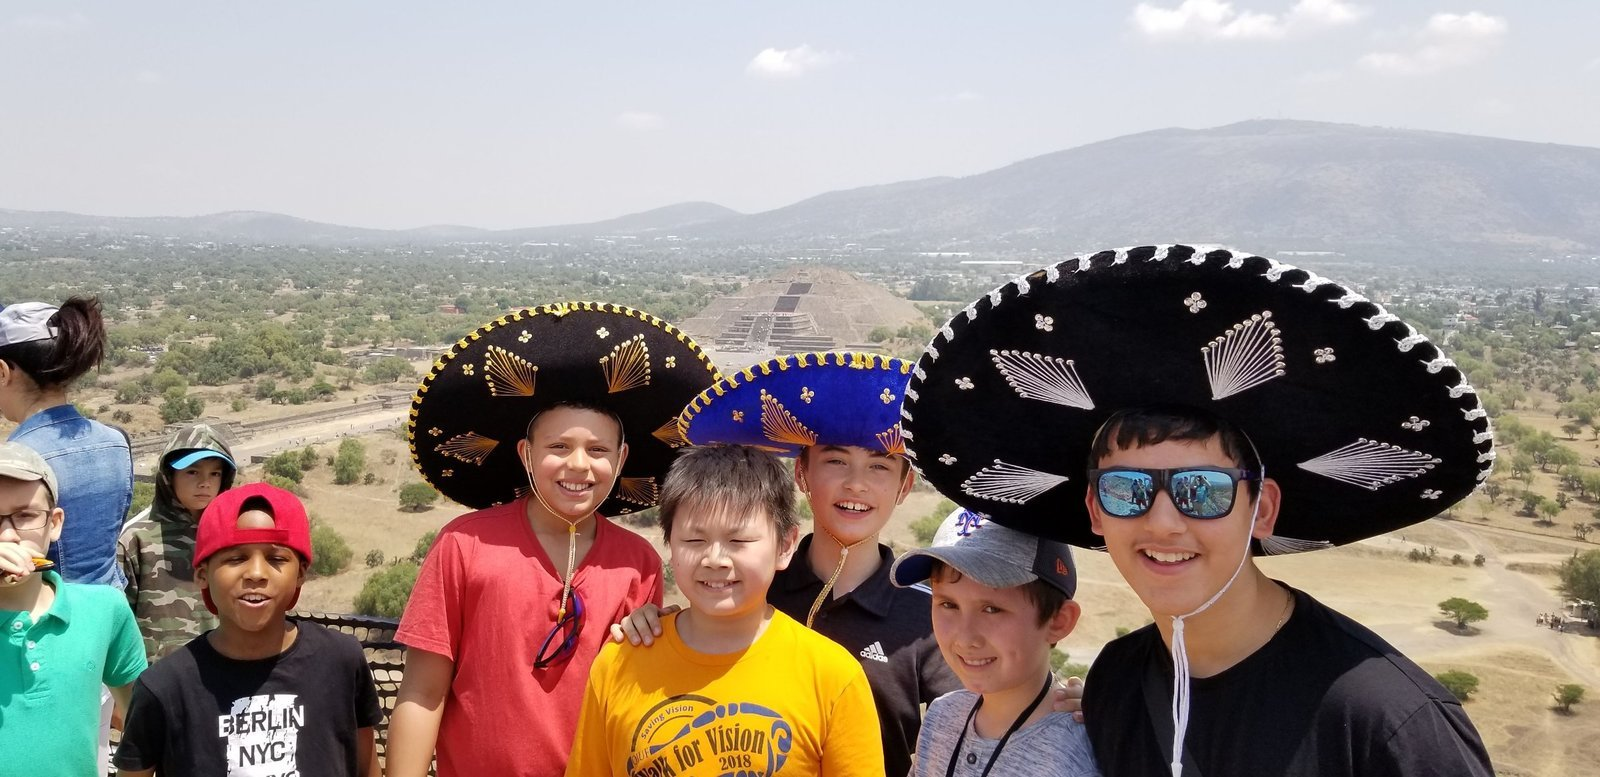 Image: Boy Choristers of Saint Paul's at the top of the Pyramid of the Sun, Teotihuacan